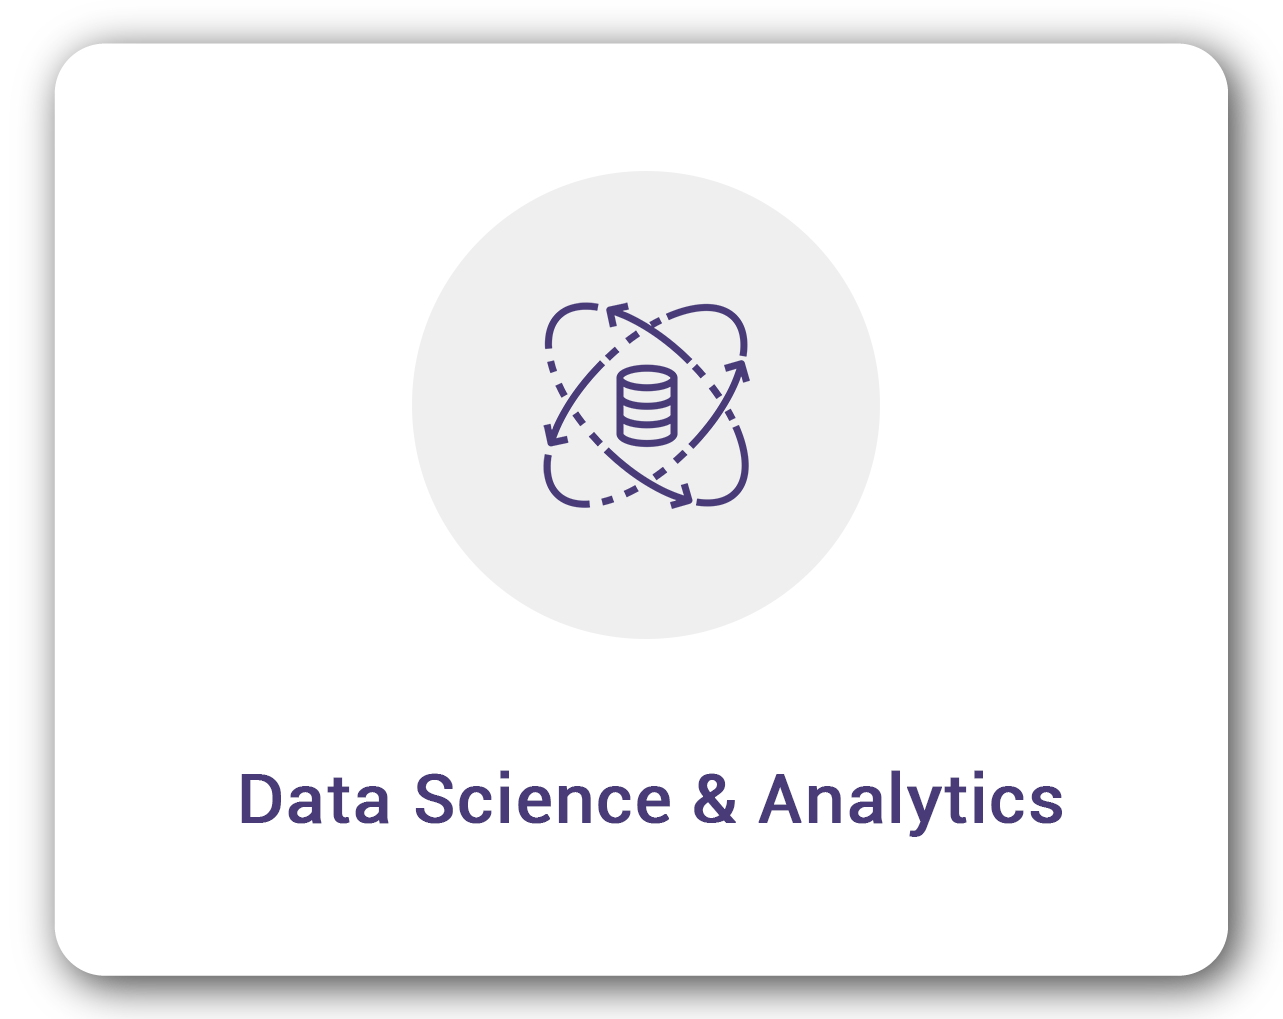 Data Science & Analytics